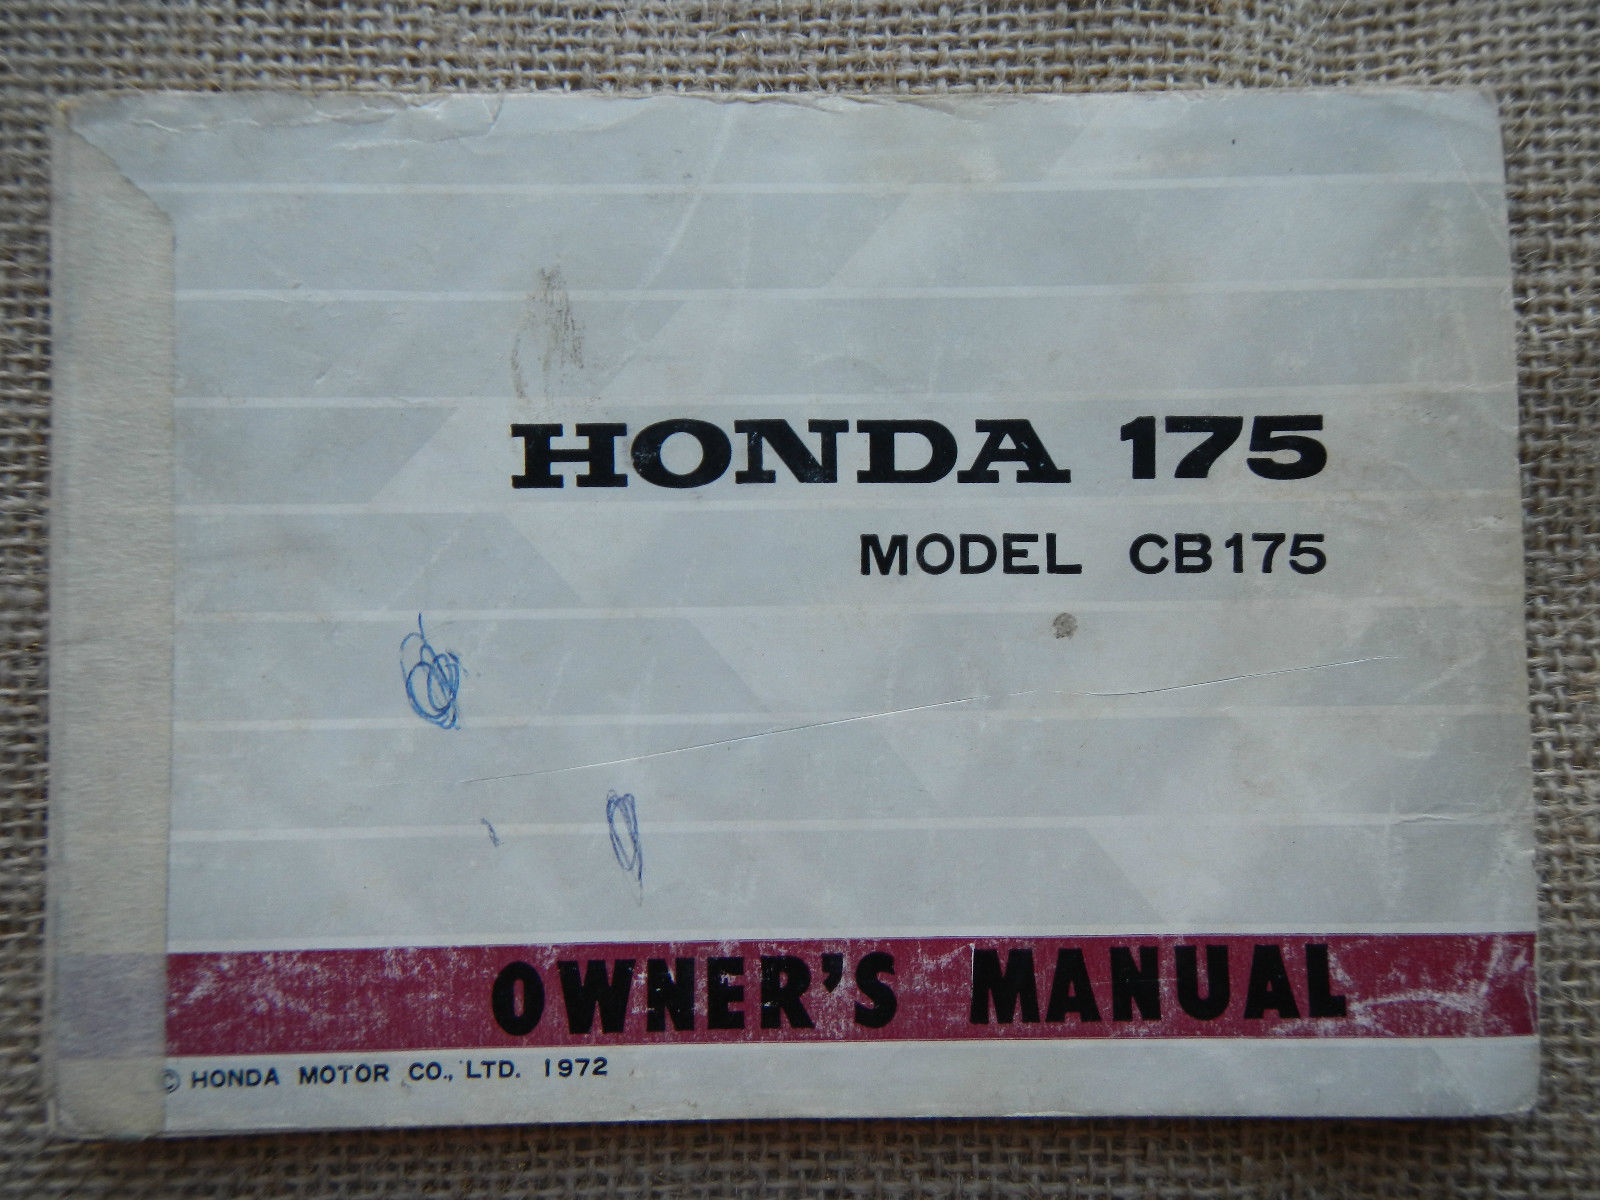 72 Cb175 Wiring Diagram Anything Diagrams 1982 Honda Cb450t Electrical 1972 Cb 175 K6 K 6 Owner And Similar Items Rh Bonanza Com 1974 Cb200 Bobber